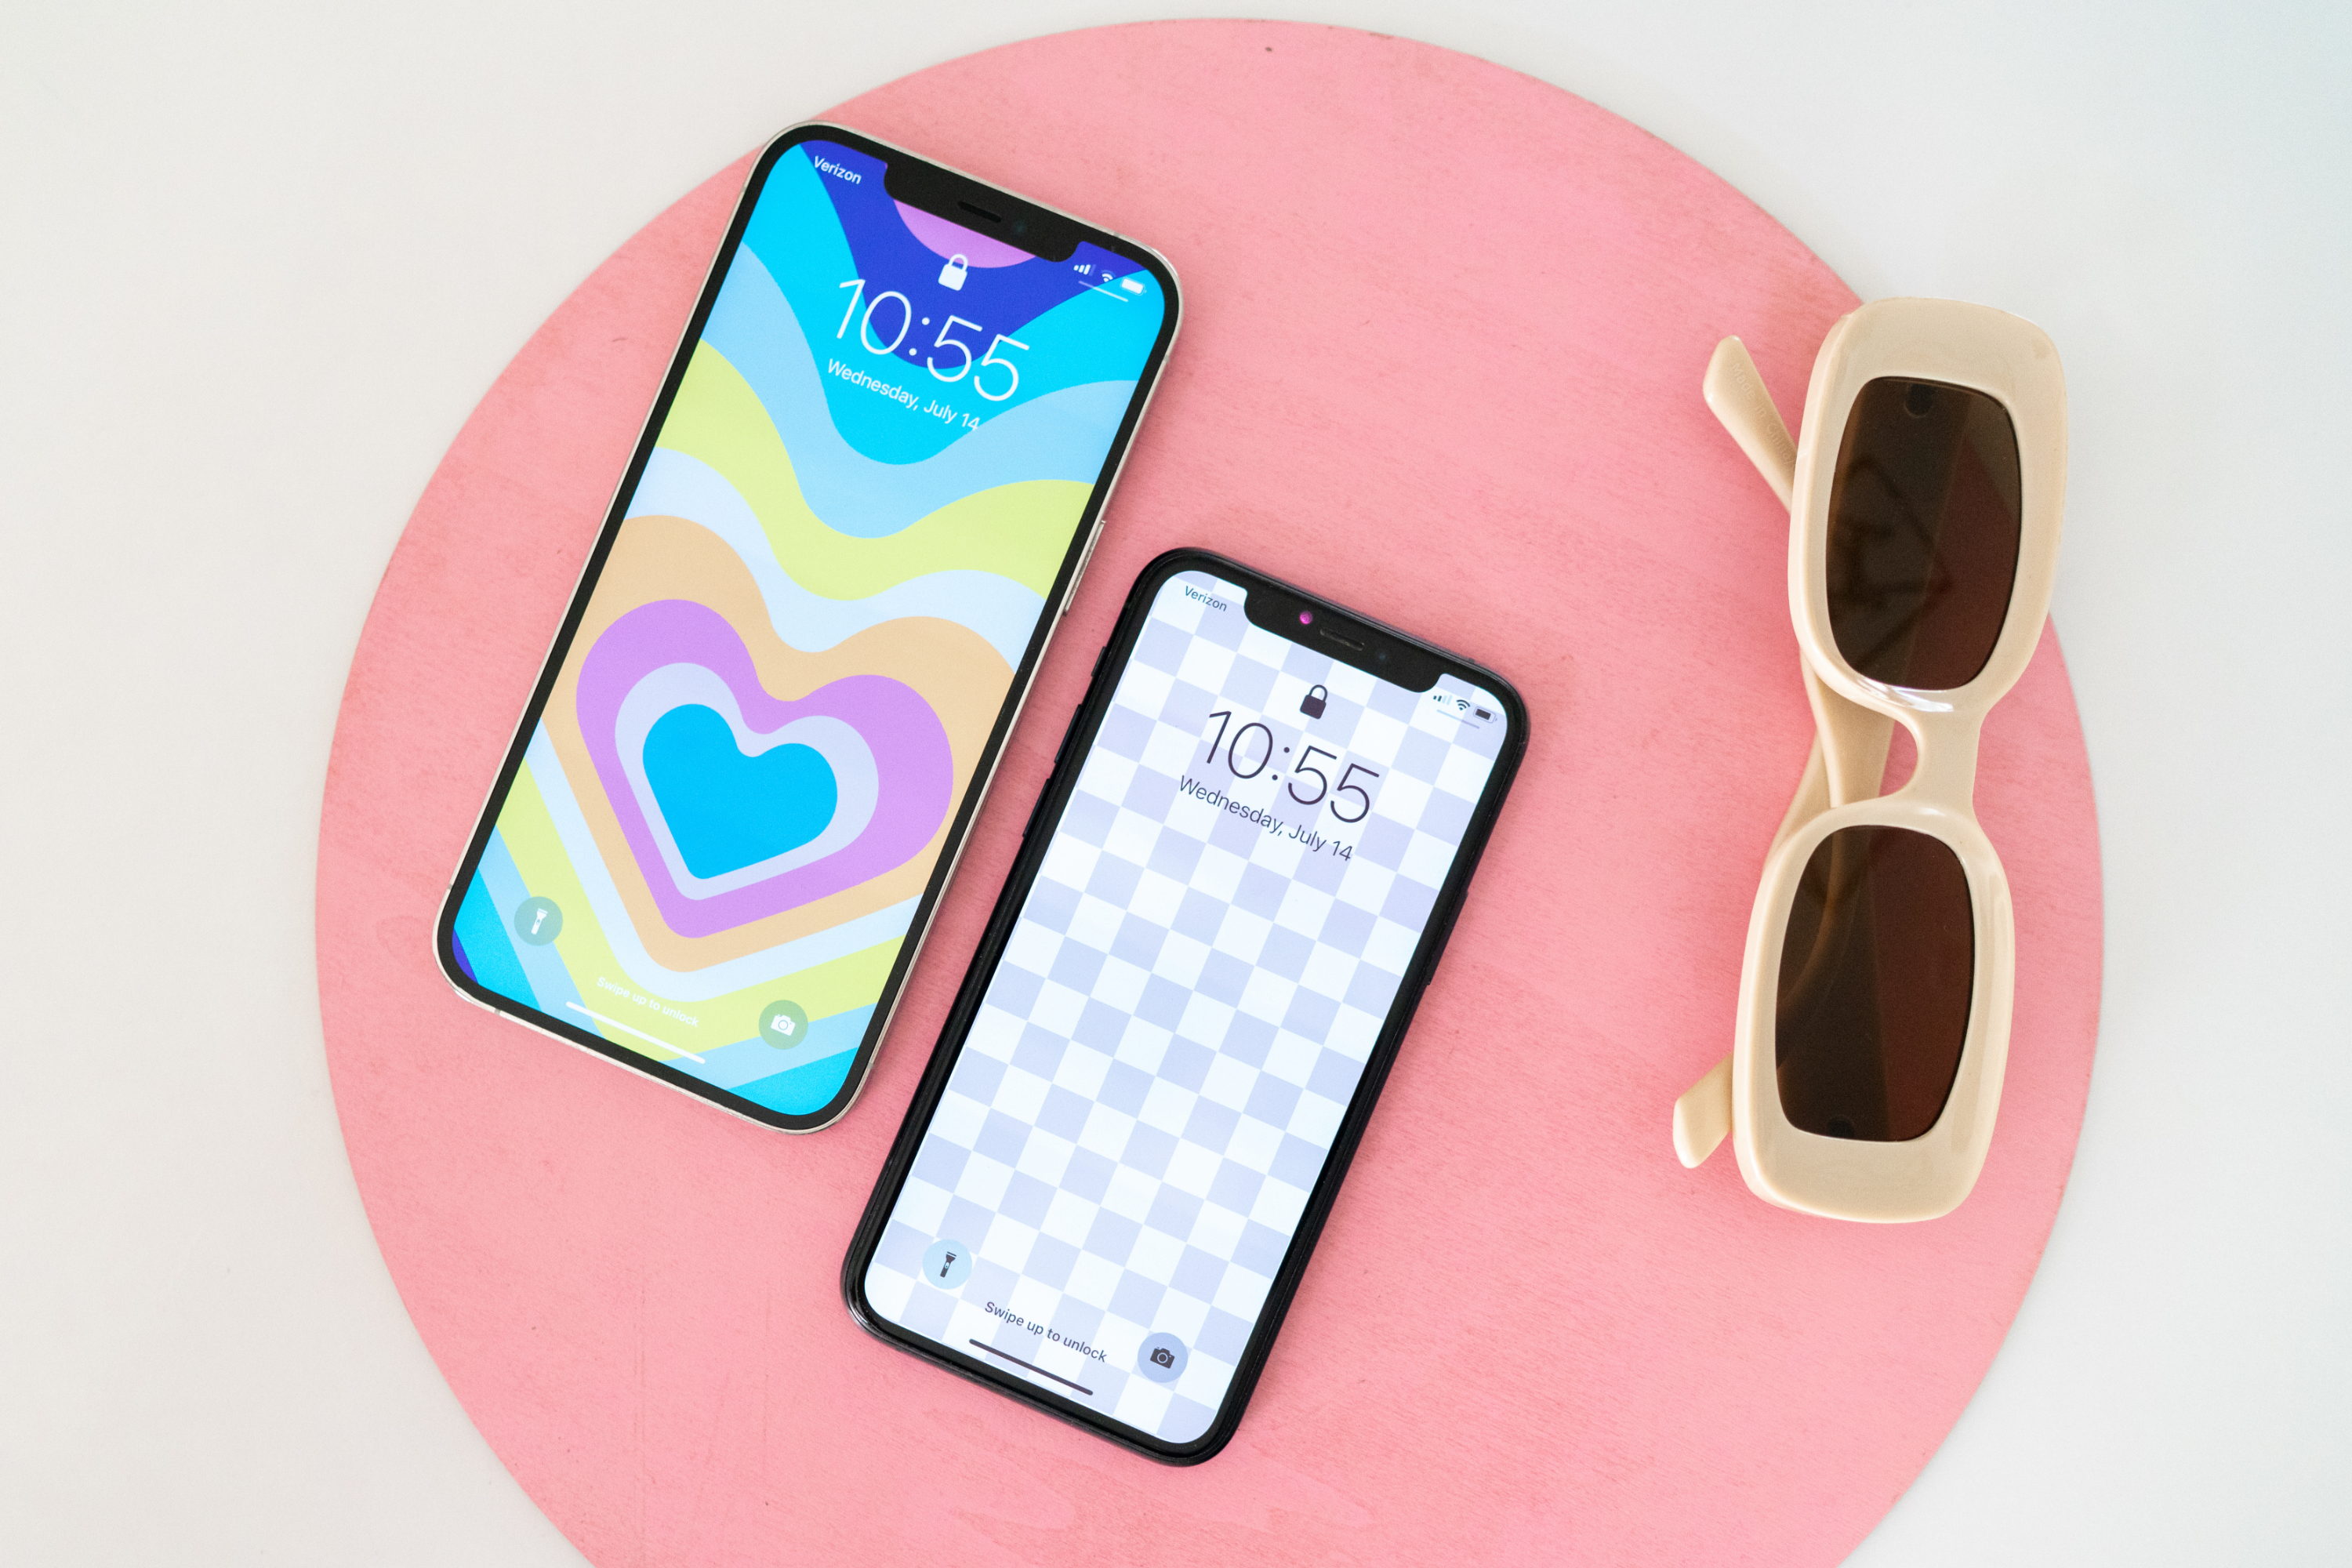 Phones with MOXYO wallpaper and sunglasses background